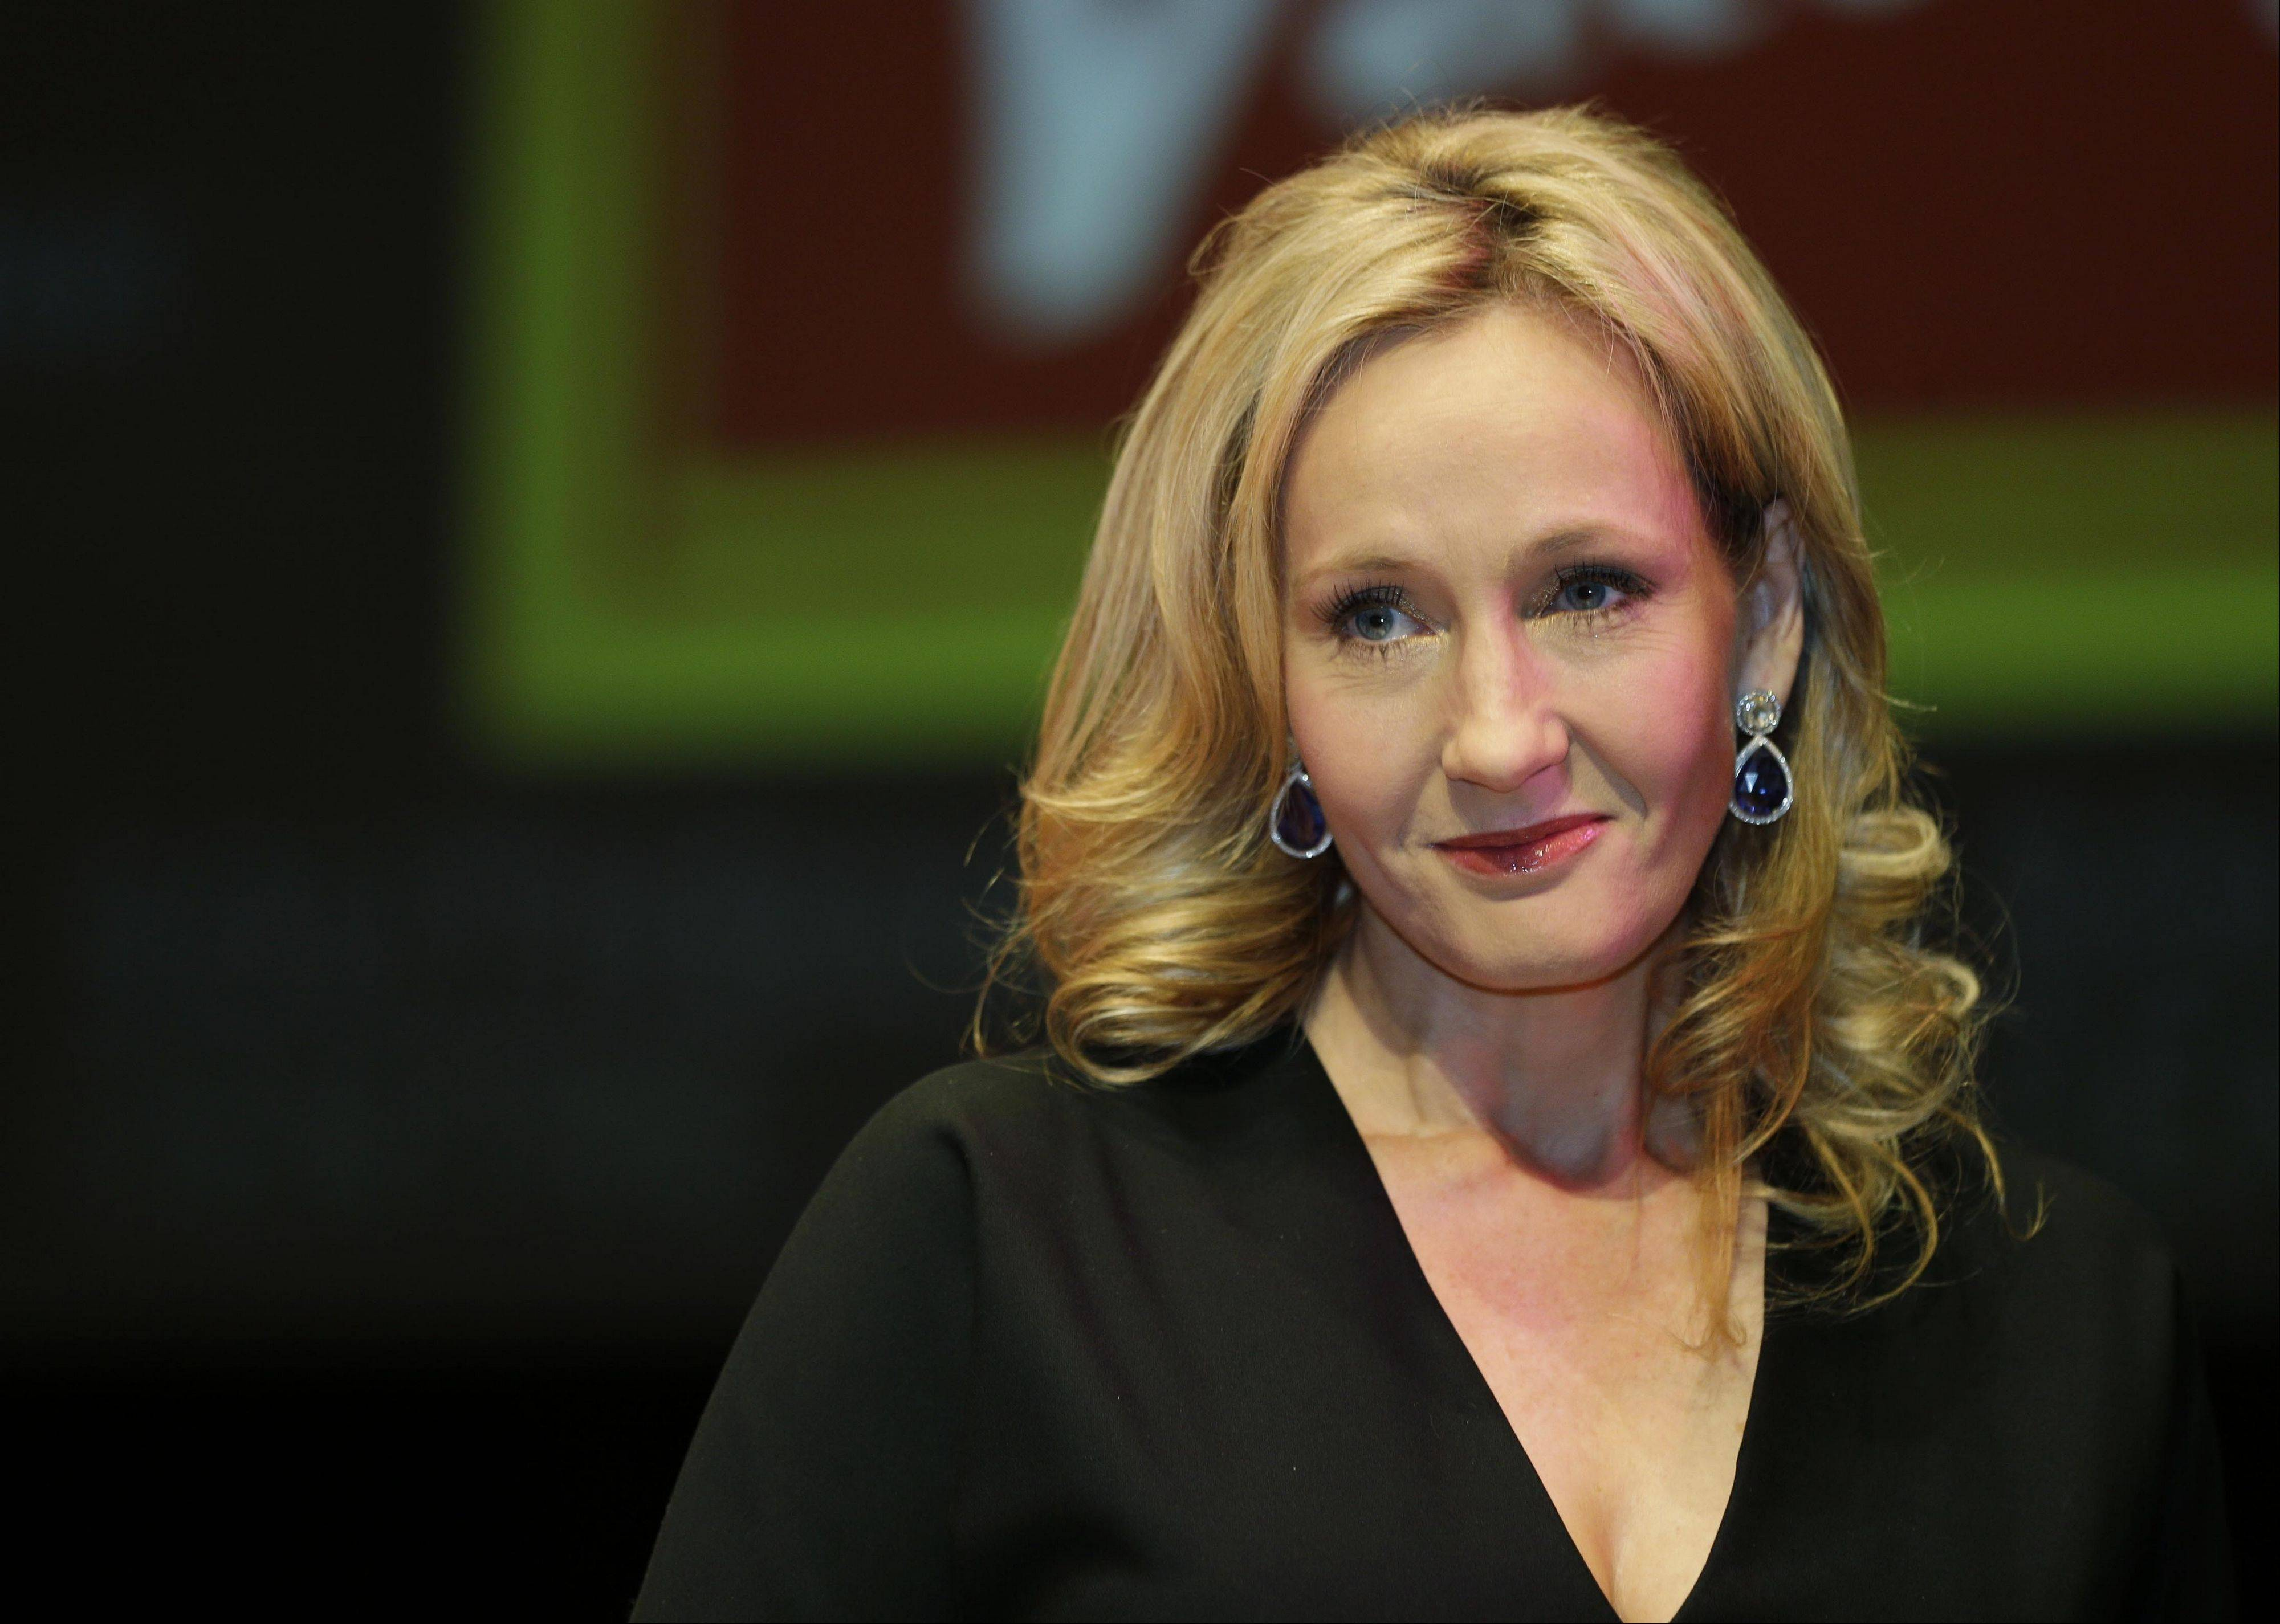 Harry Potter is coming to the stage. J.K. Rowling said on Friday that she is working on a play about the boy wizard's life before he attended Hogwarts School of Witchcraft and Wizardry.